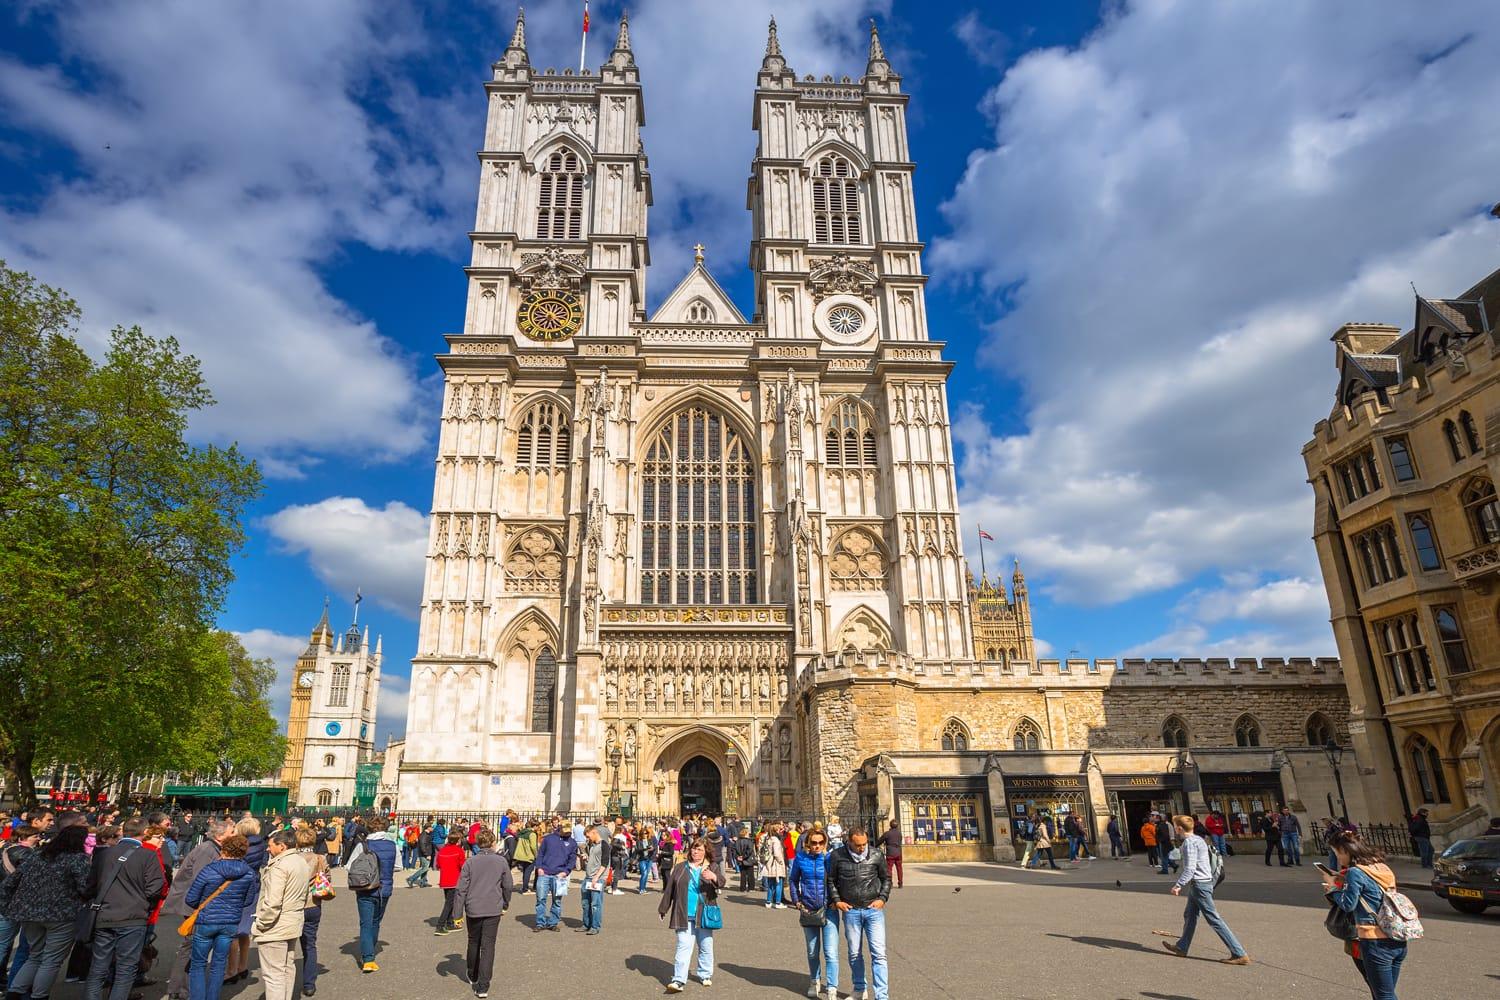 Westminster Abbey in London, UK